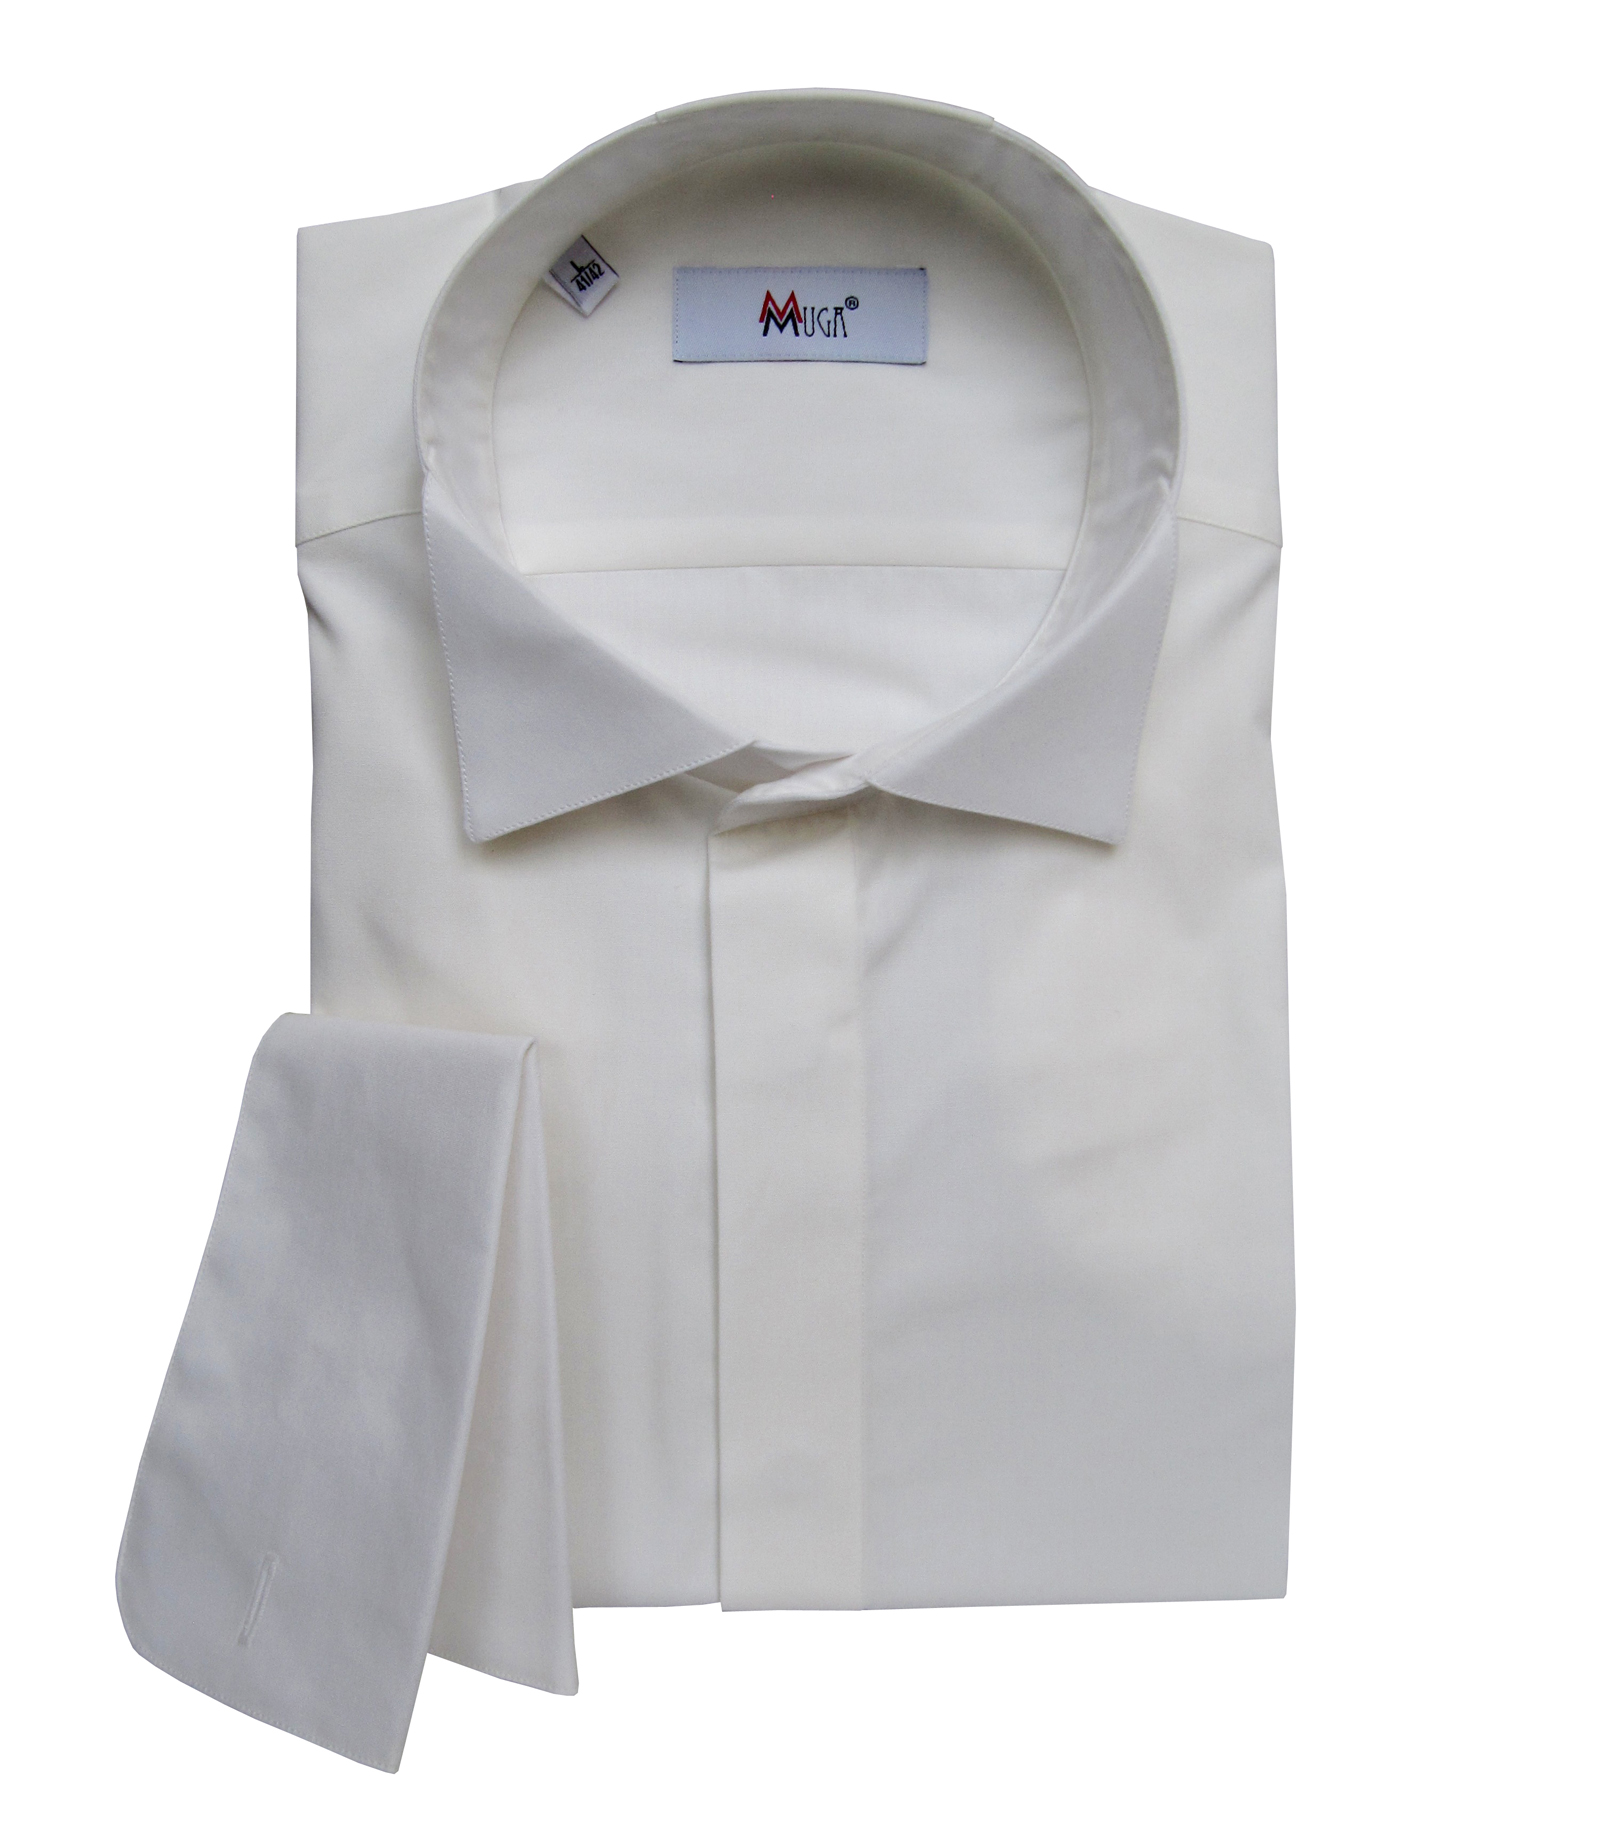 Muga Mens French Cuff Dress Shirt Wedding Clothing